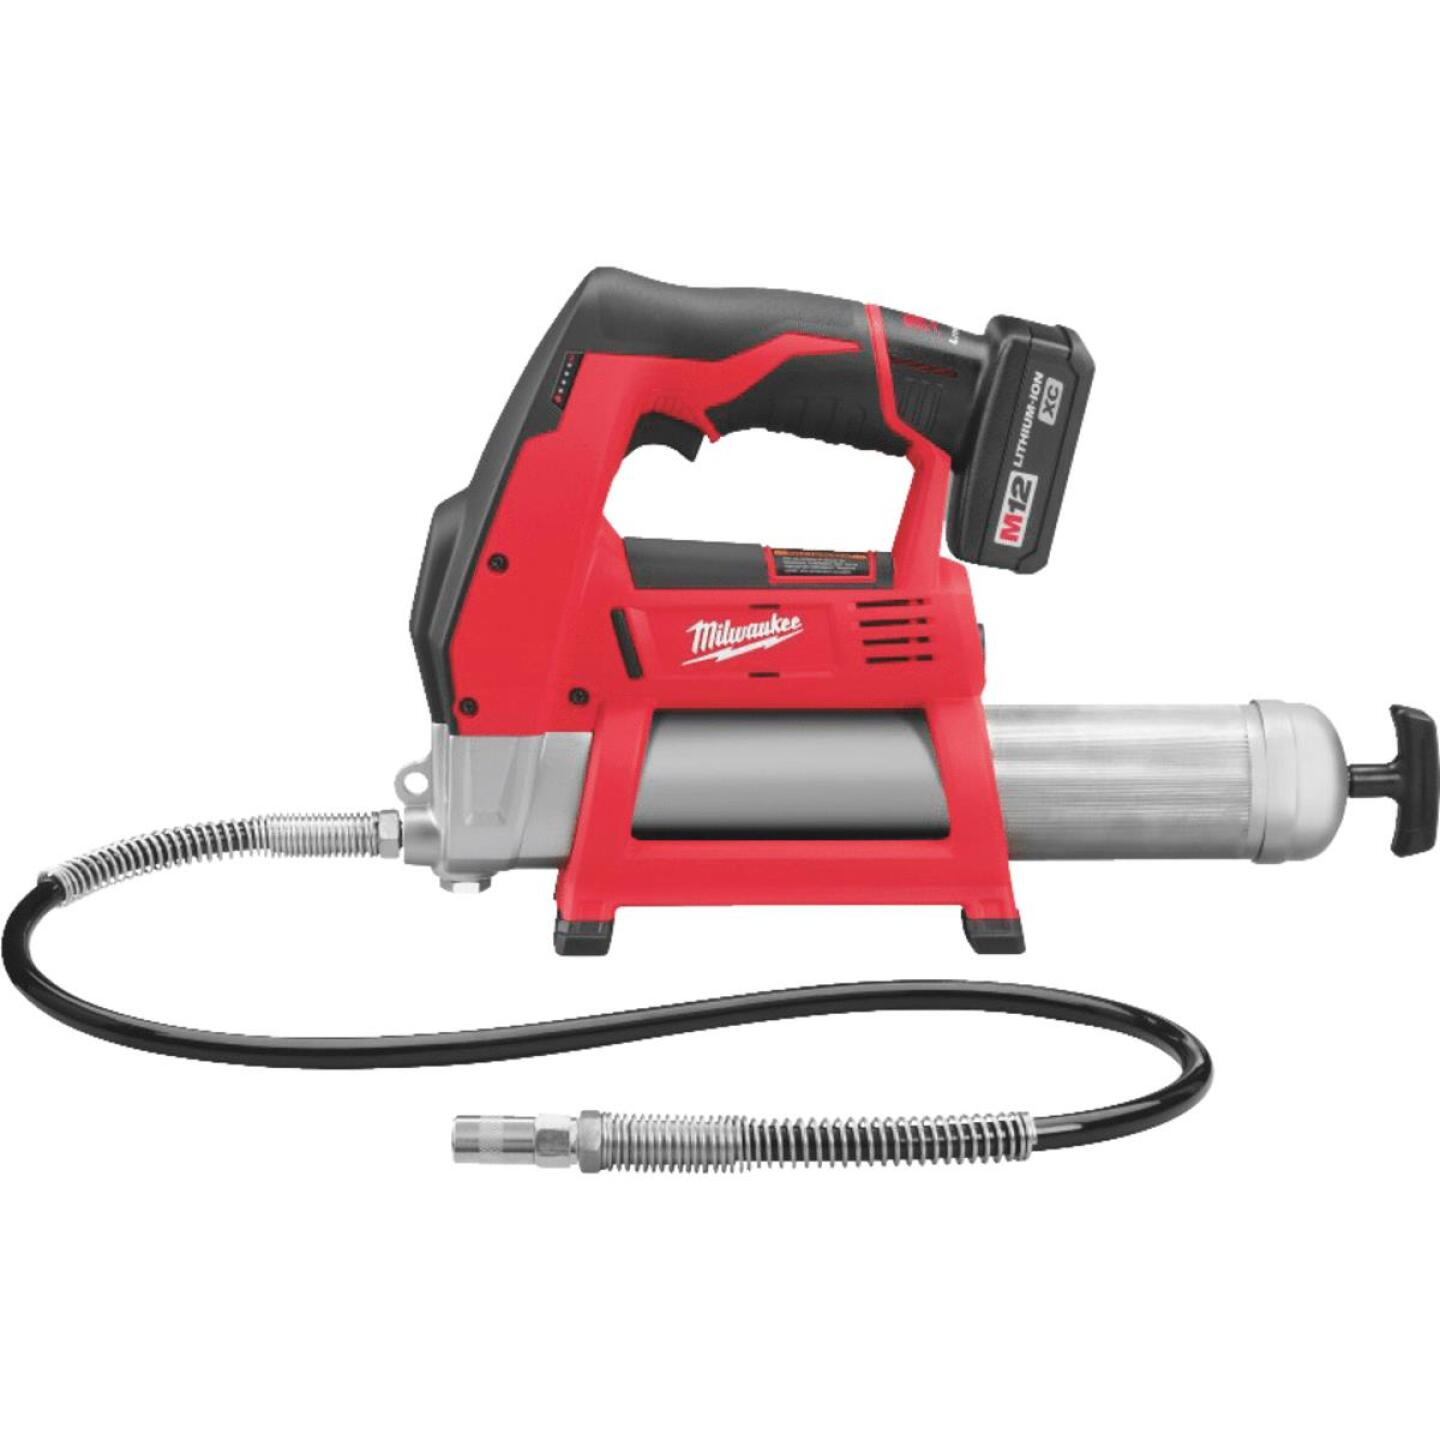 Milwaukee M12 12-Volt Lithium-Ion Cordless Grease Gun Kit Image 1